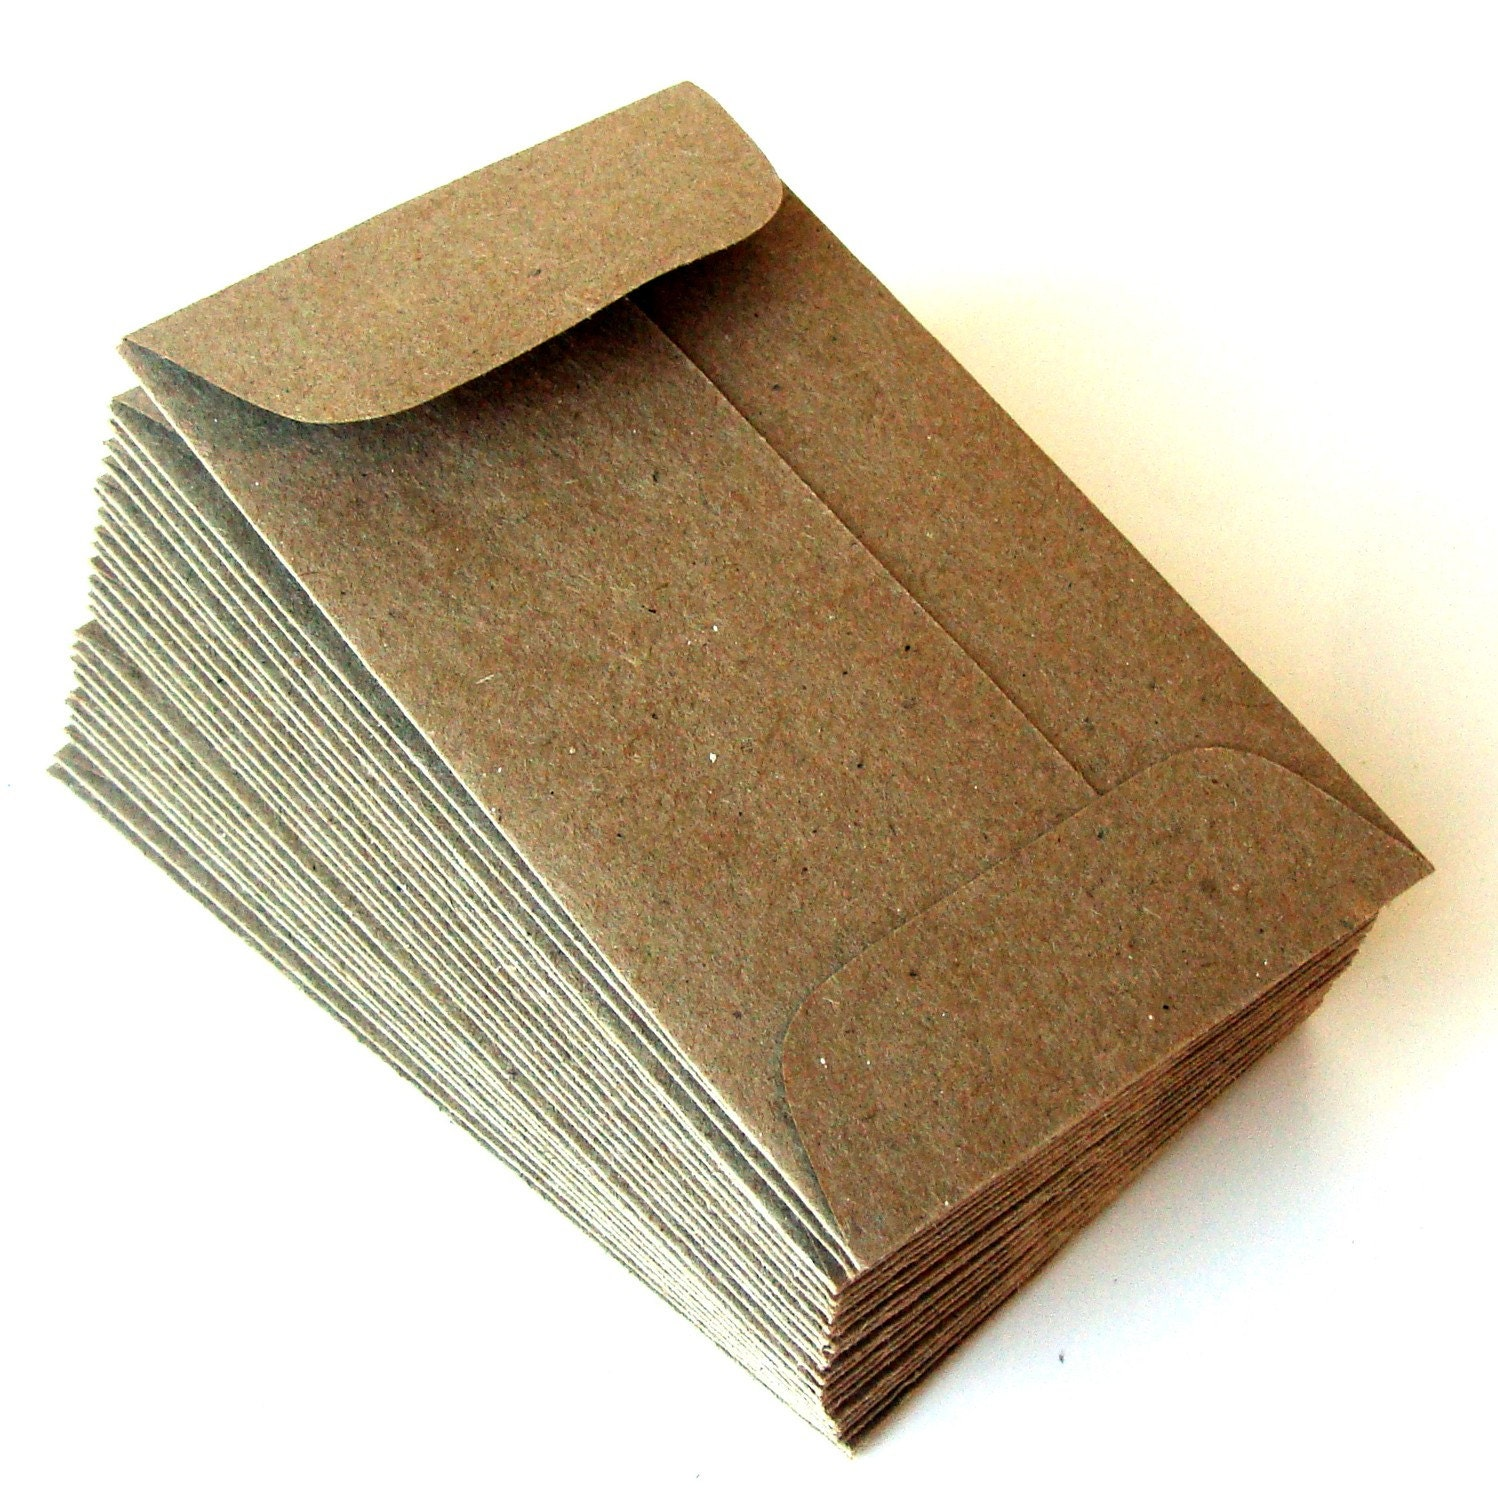 10 Mini Brown Bag Natural KRAFT Paper Envelopes 2 25 x 3 75